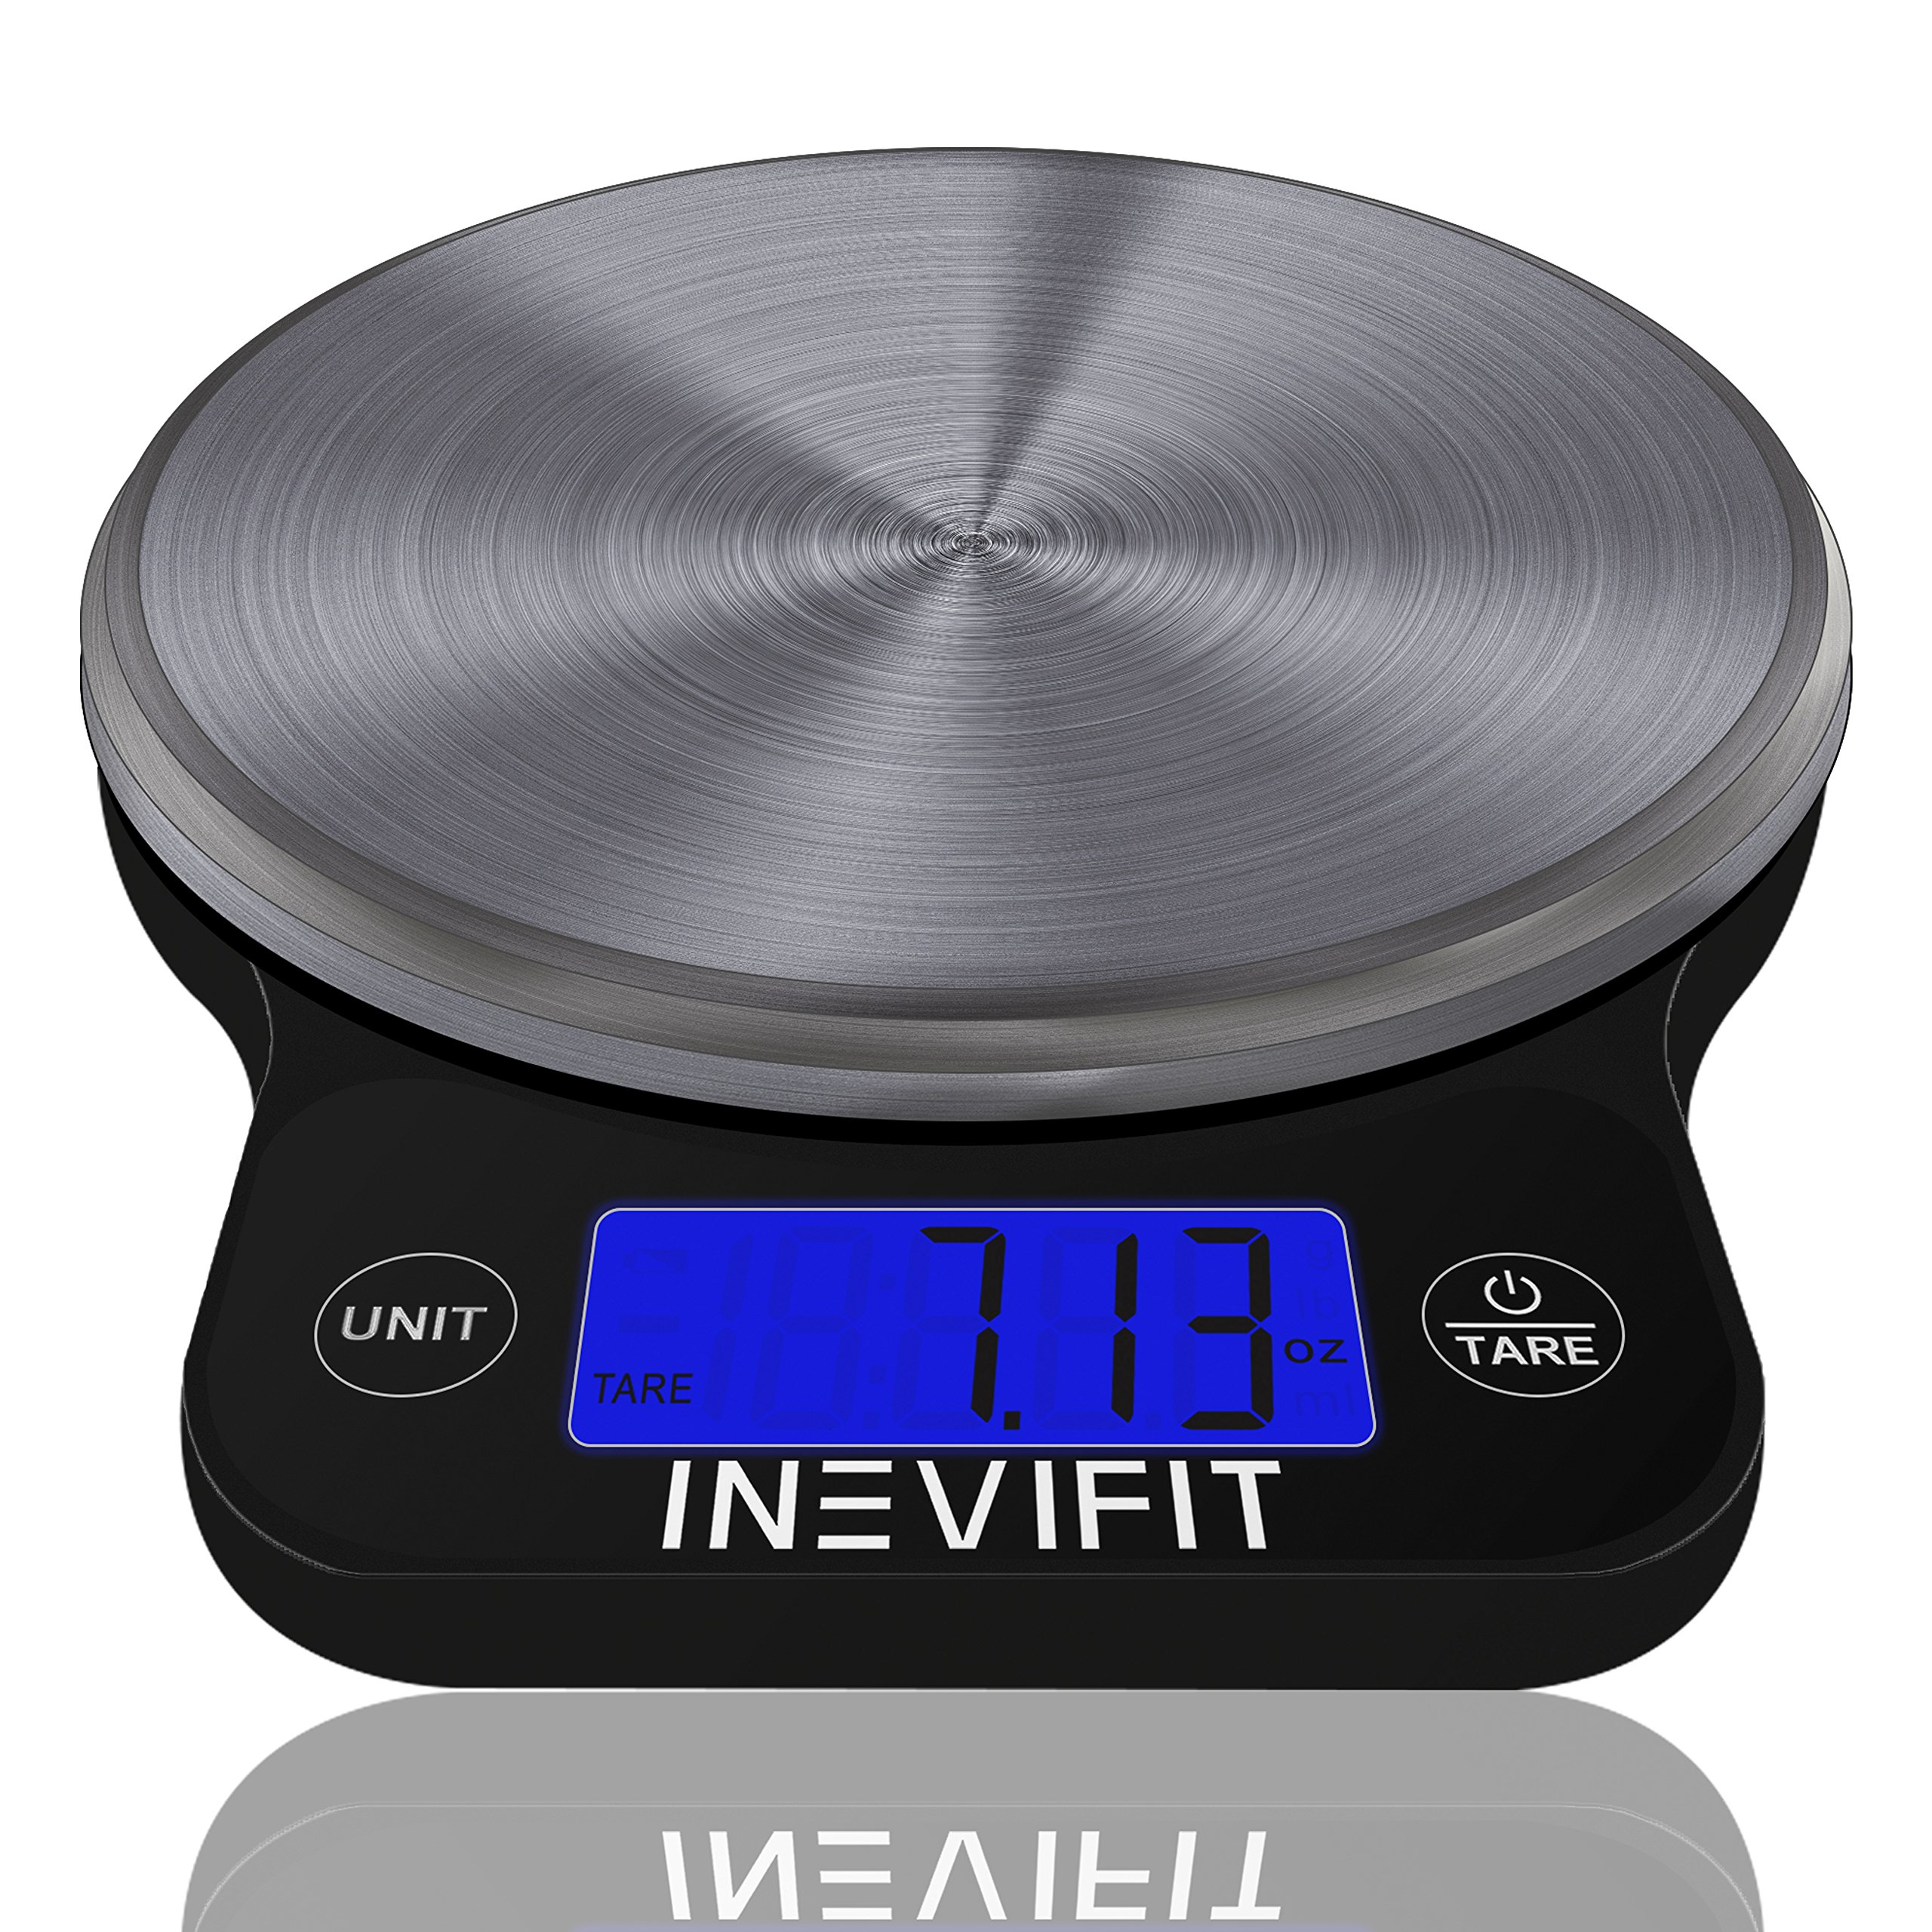 INEVIFIT Accurate Multifunction Stainless Batteries